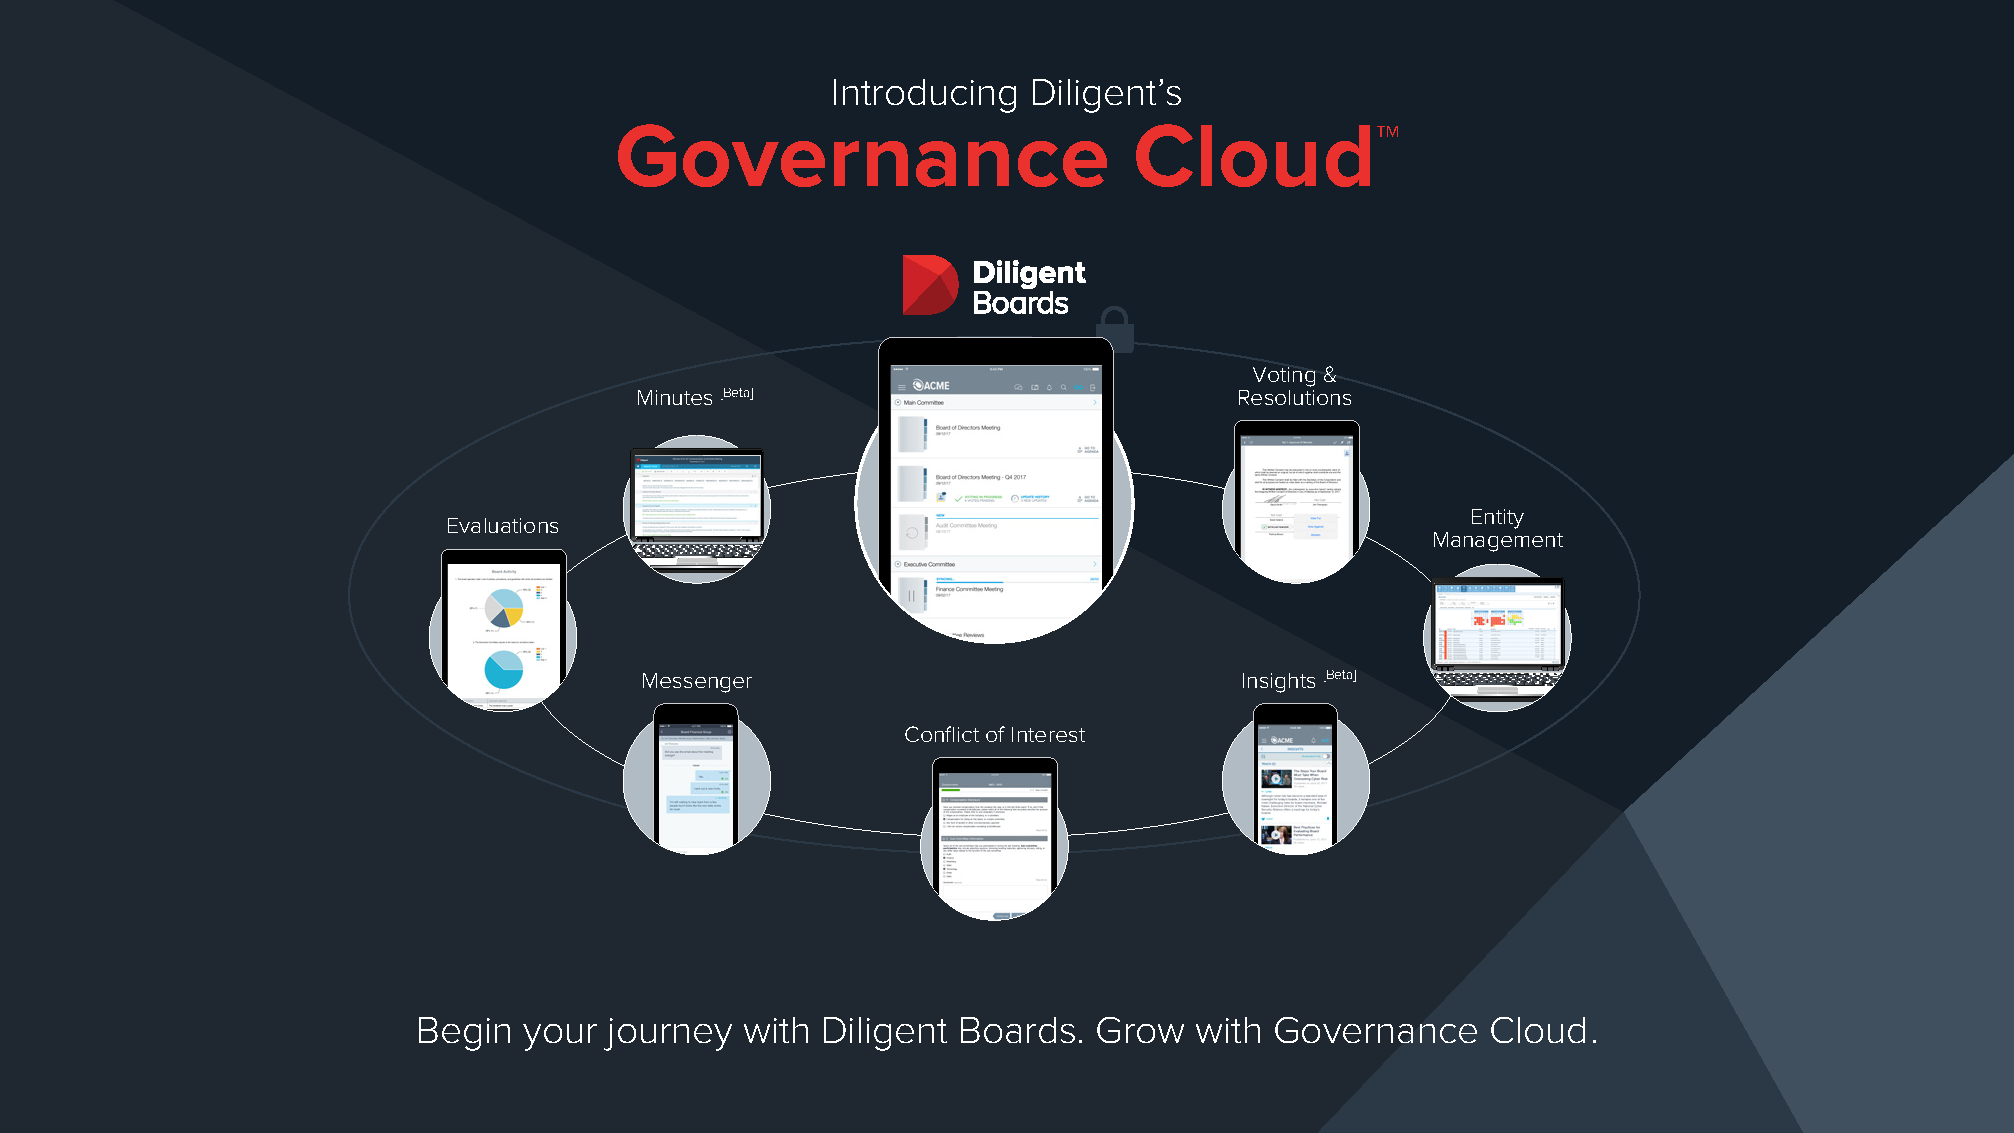 The Diligent Governance Cloud is the only integrated modern governance solution that enables organisations to achieve best-in-class governance. The ecosystem of software tools digitises the various activities and tasks for the board of directors.